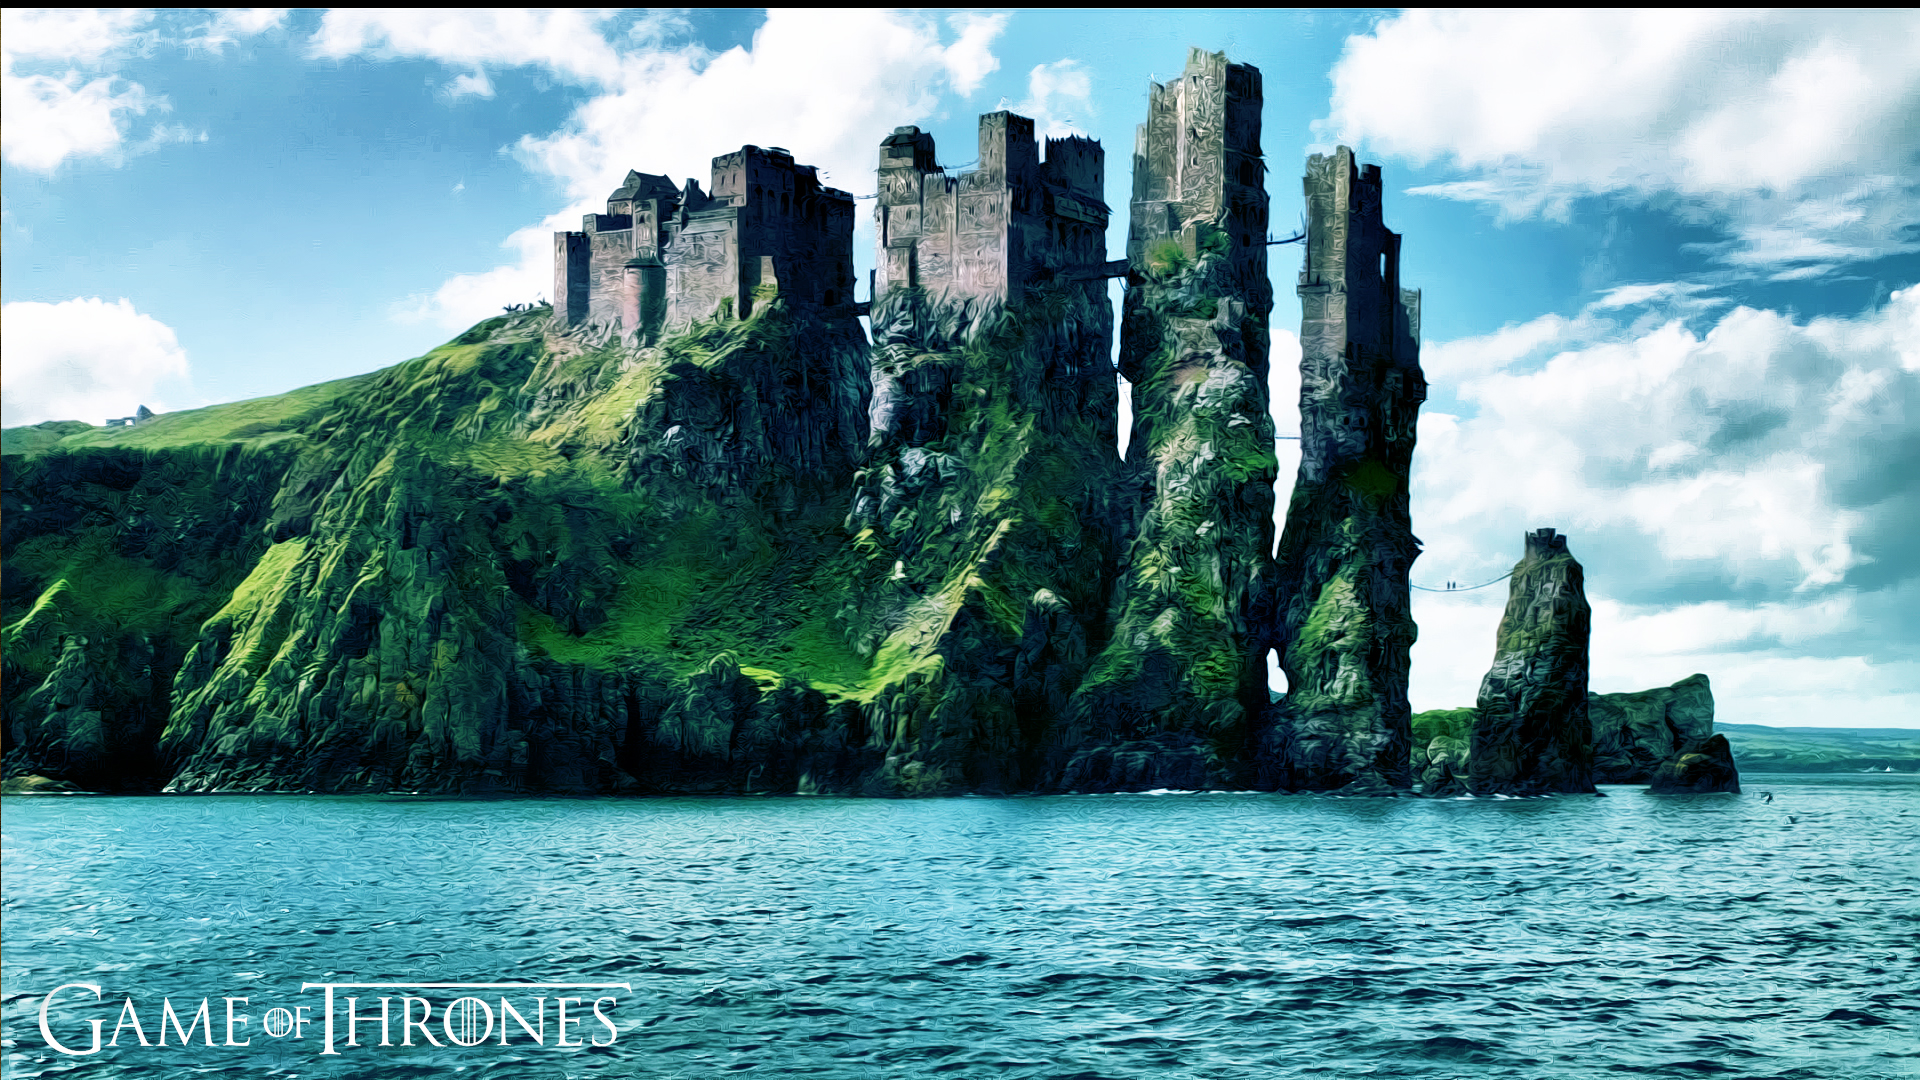 Game of Thrones Desktop Wallpapers   Wallpaper High Definition High 1920x1080